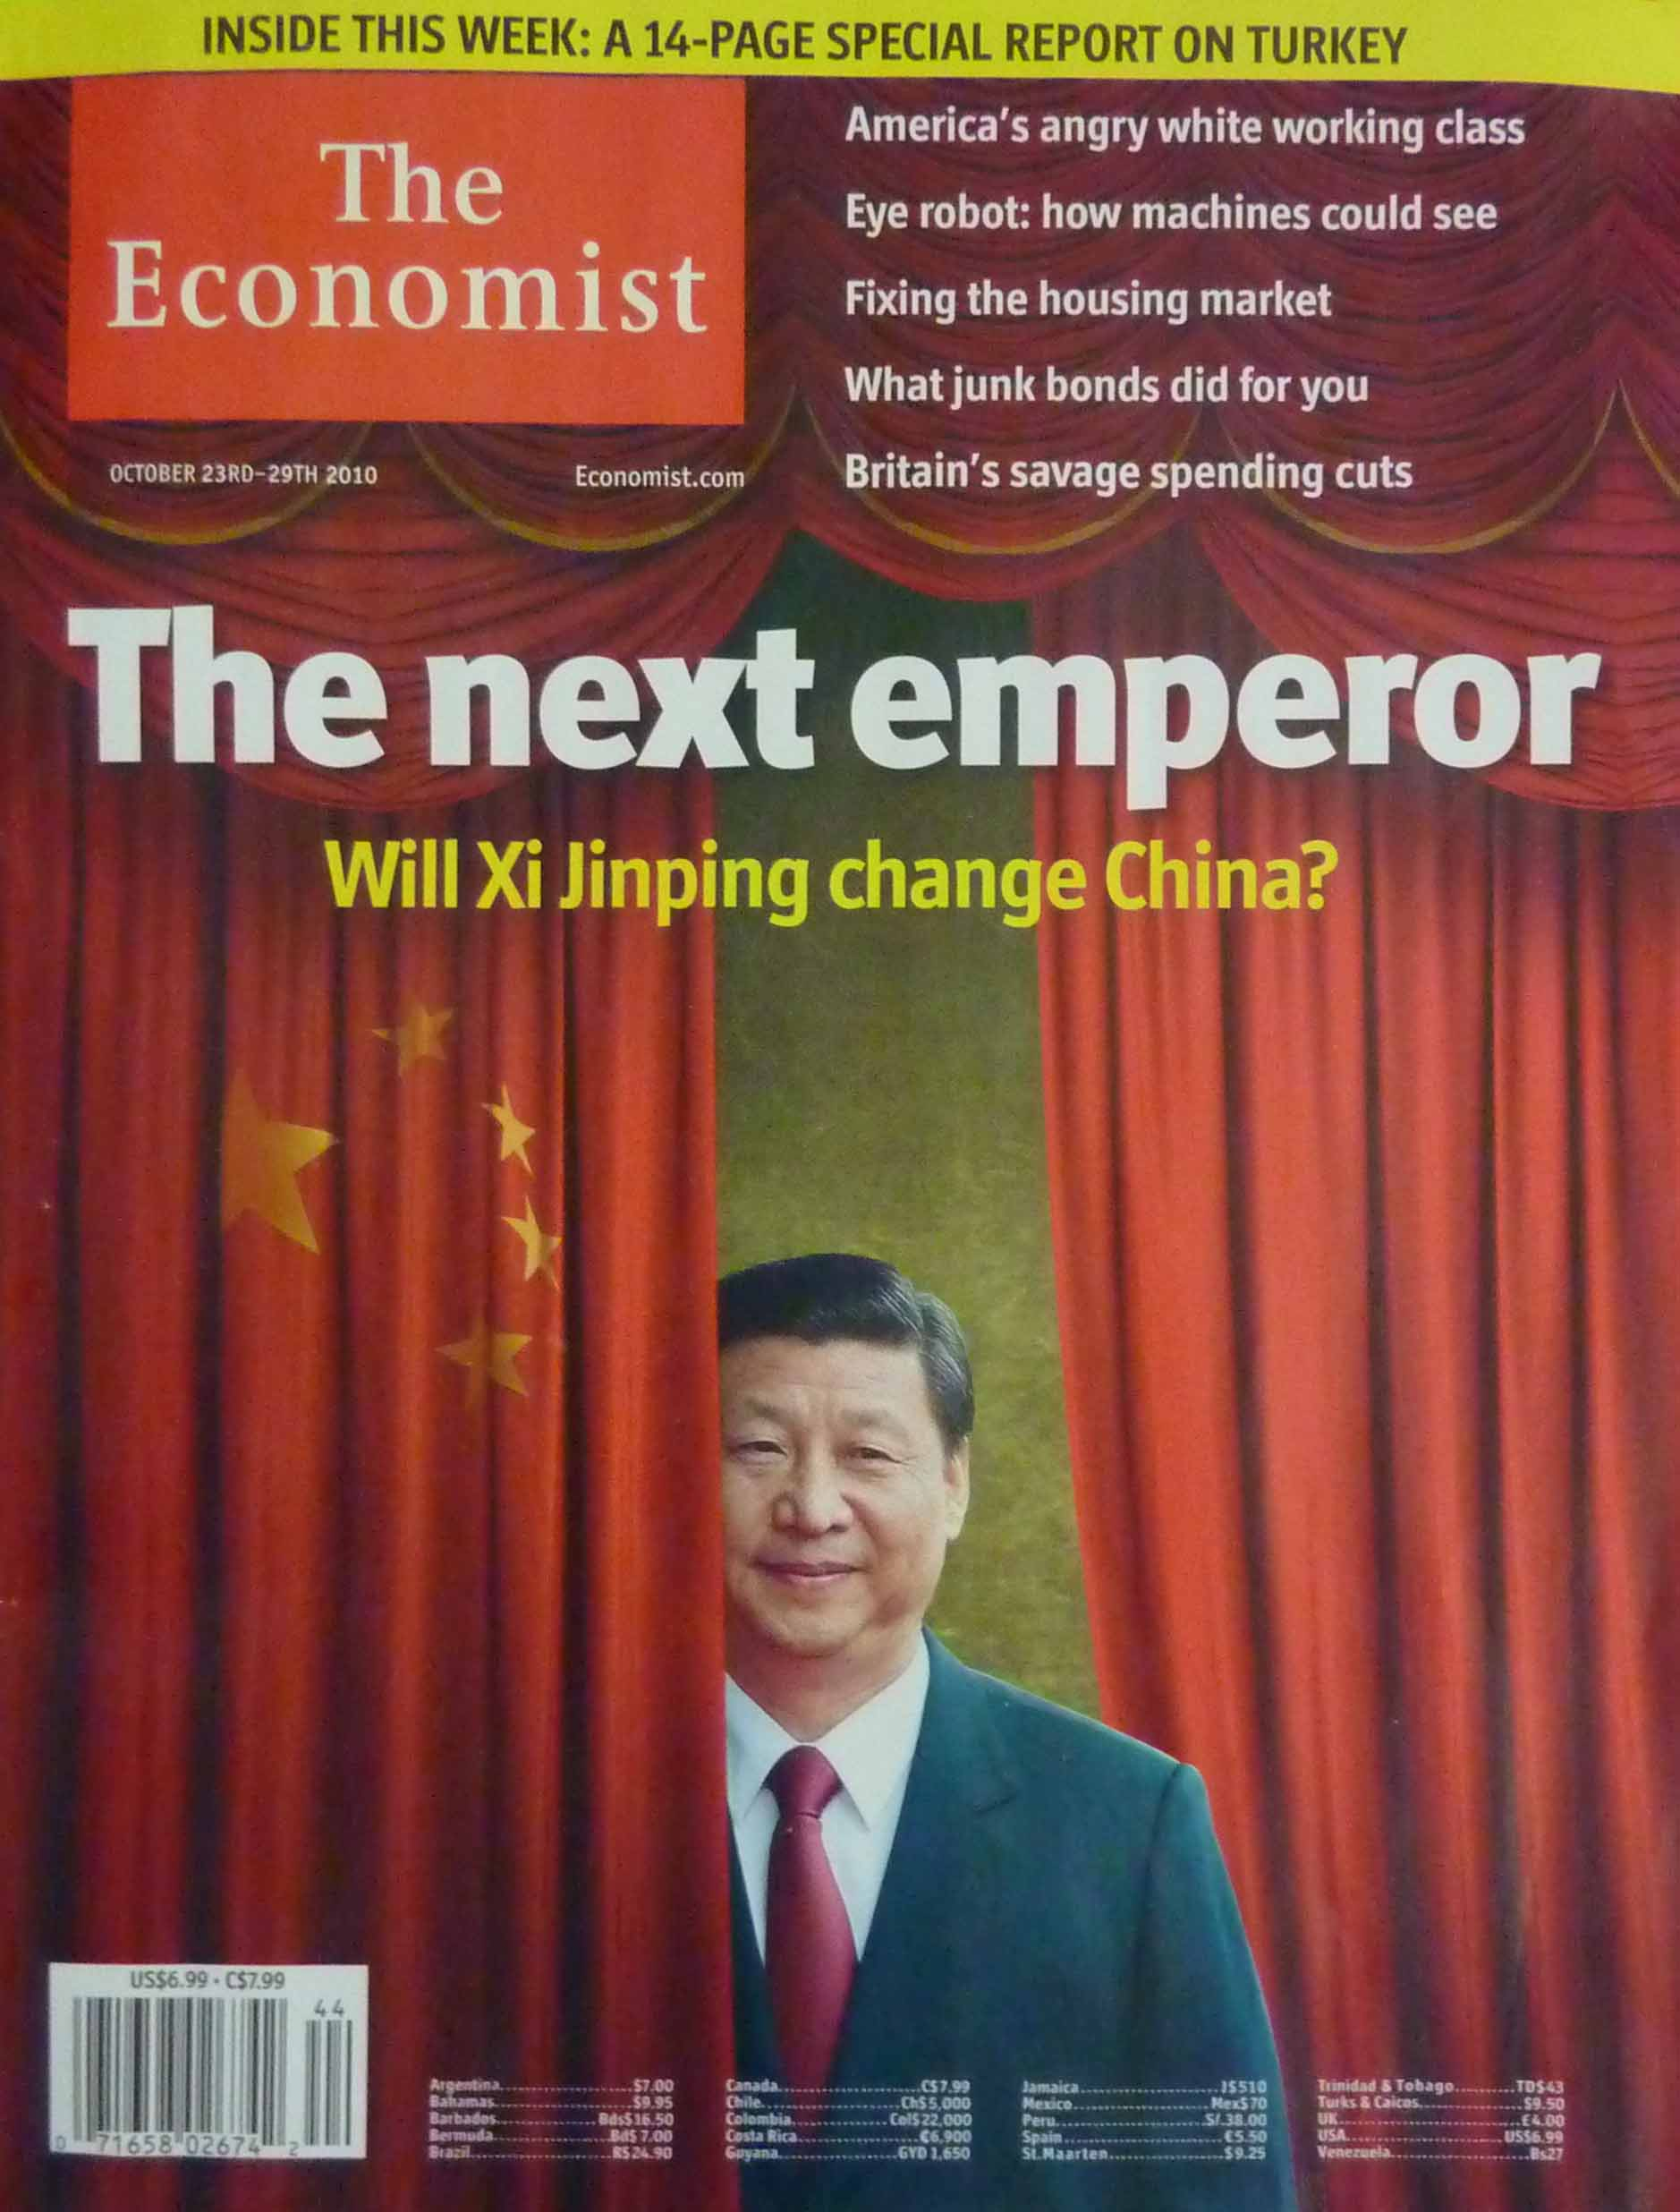 https://ilookchina.files.wordpress.com/2010/11/the-economist-october-23-001.jpg